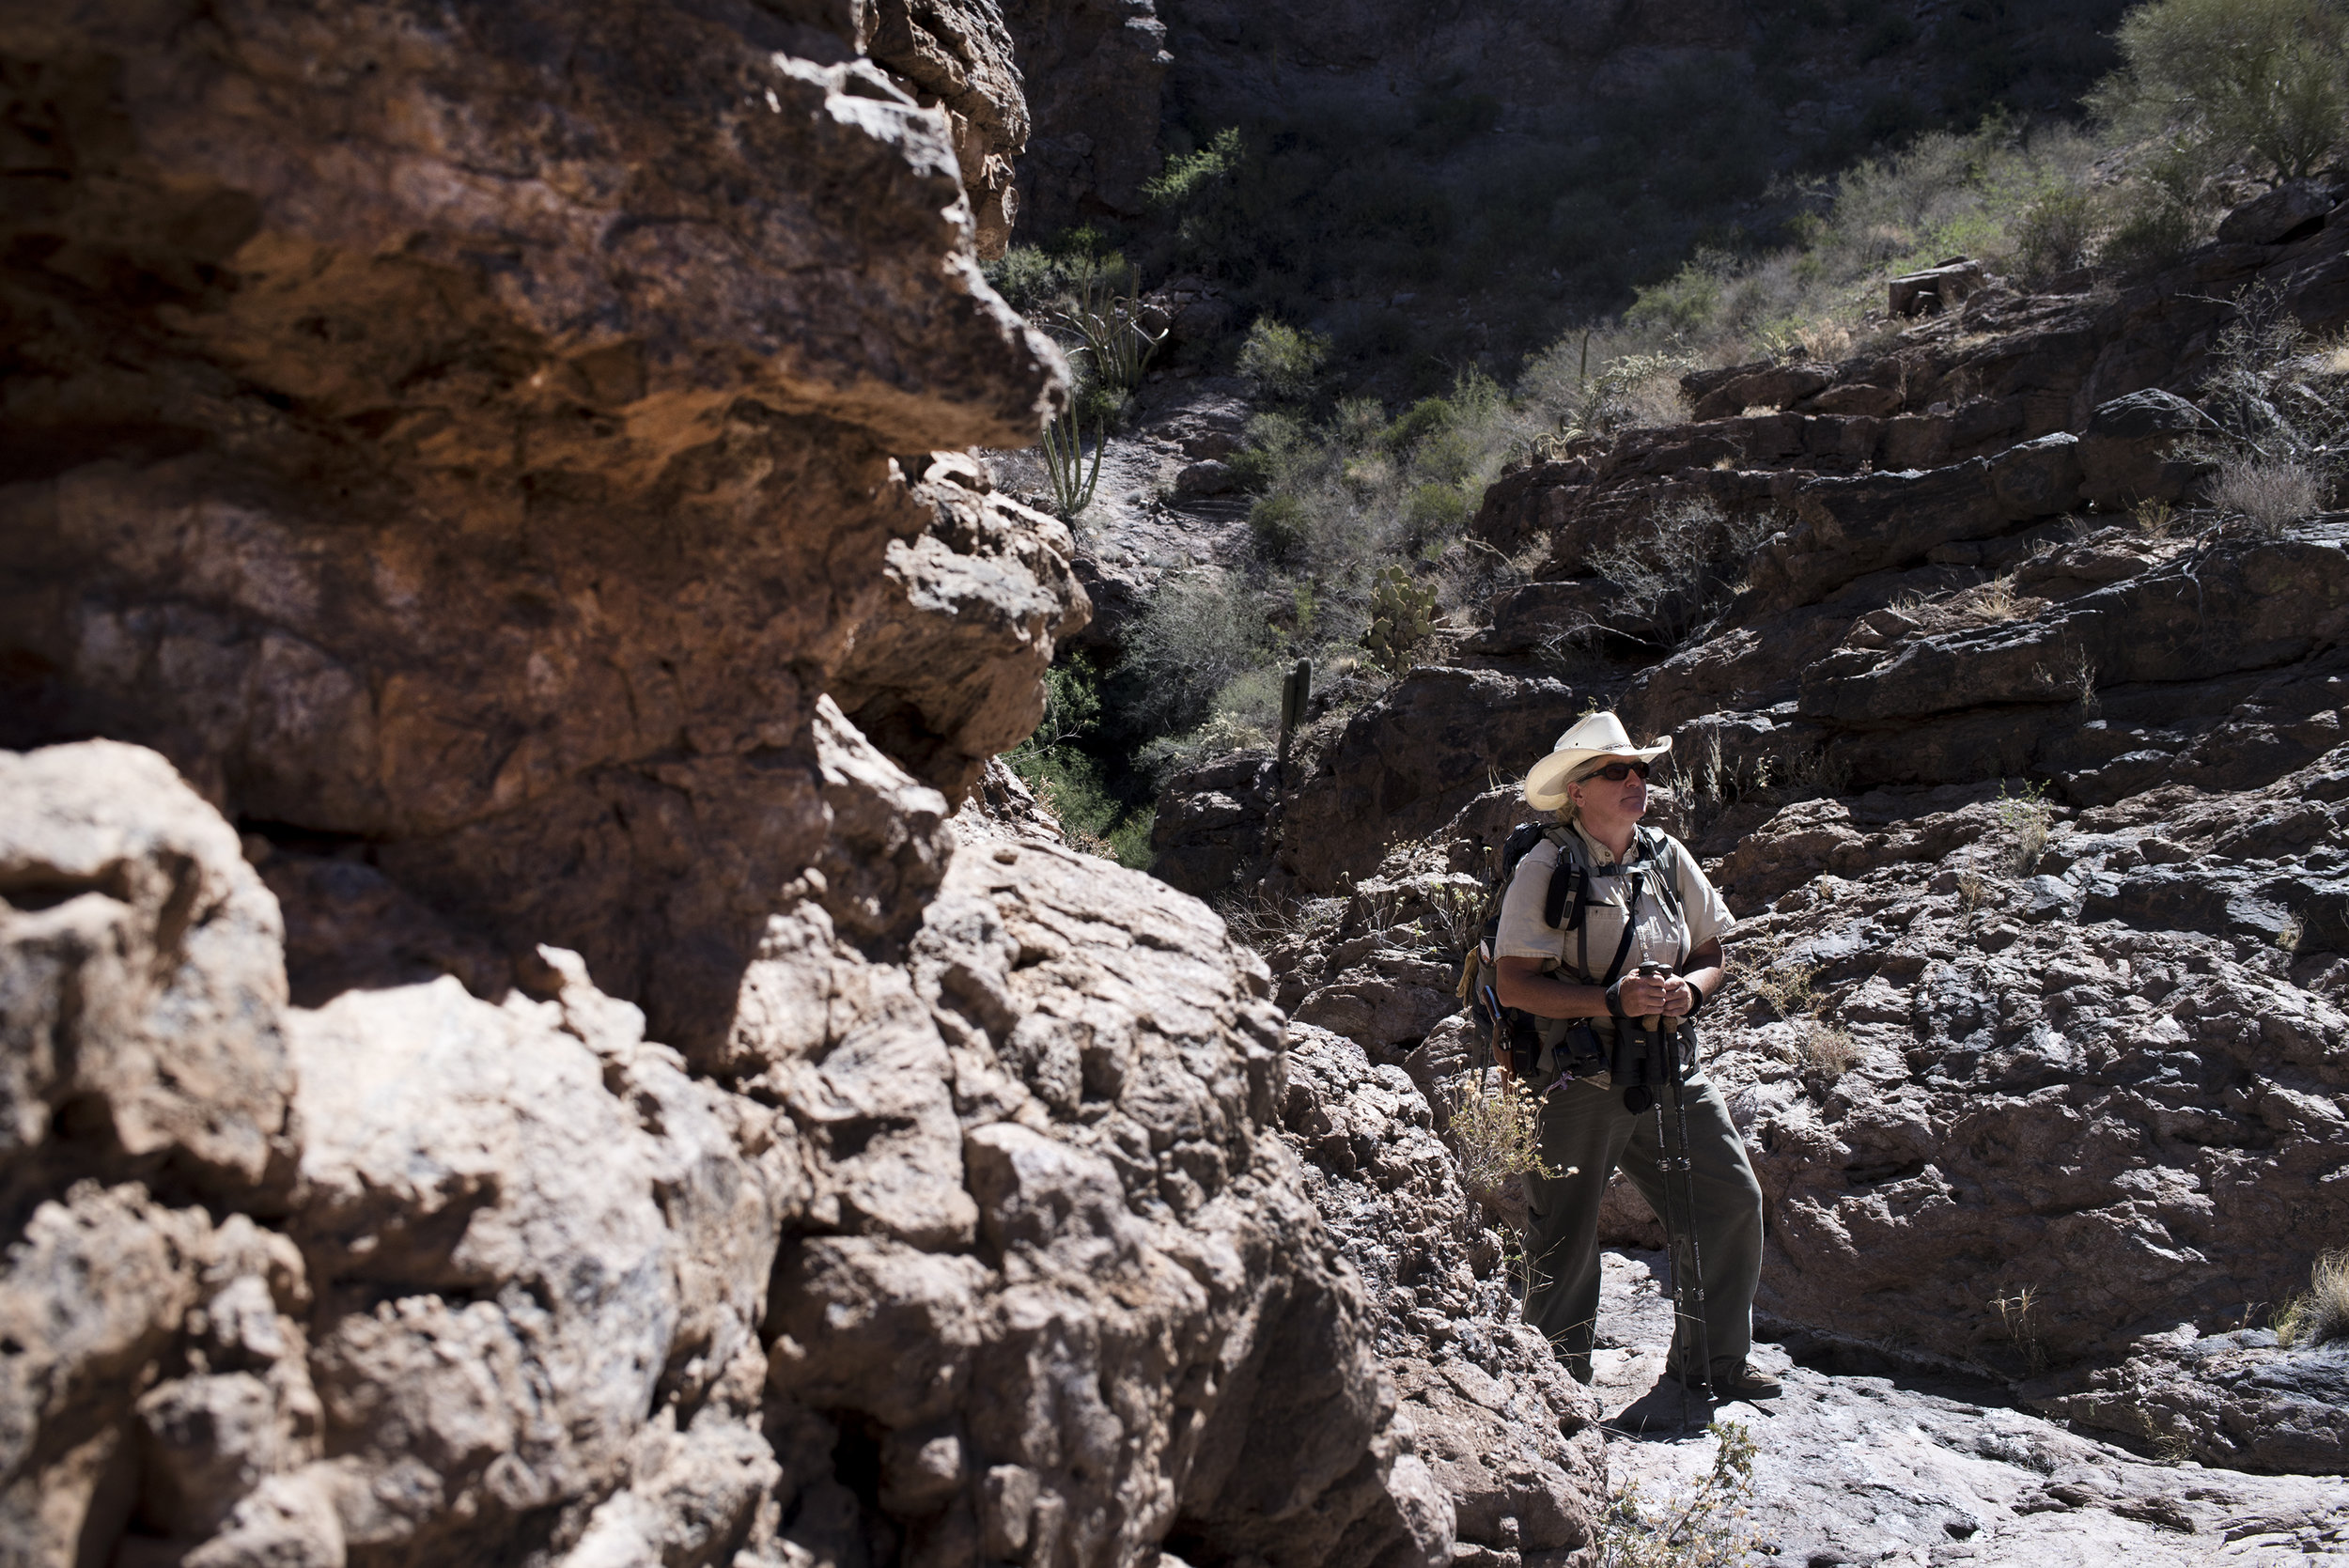 Independent wildlife biologist Rosemary Schiano surveys an area of southern Arizona's Organ Pipe Cactus National Monument, along the US-Mexico border. June 2017.